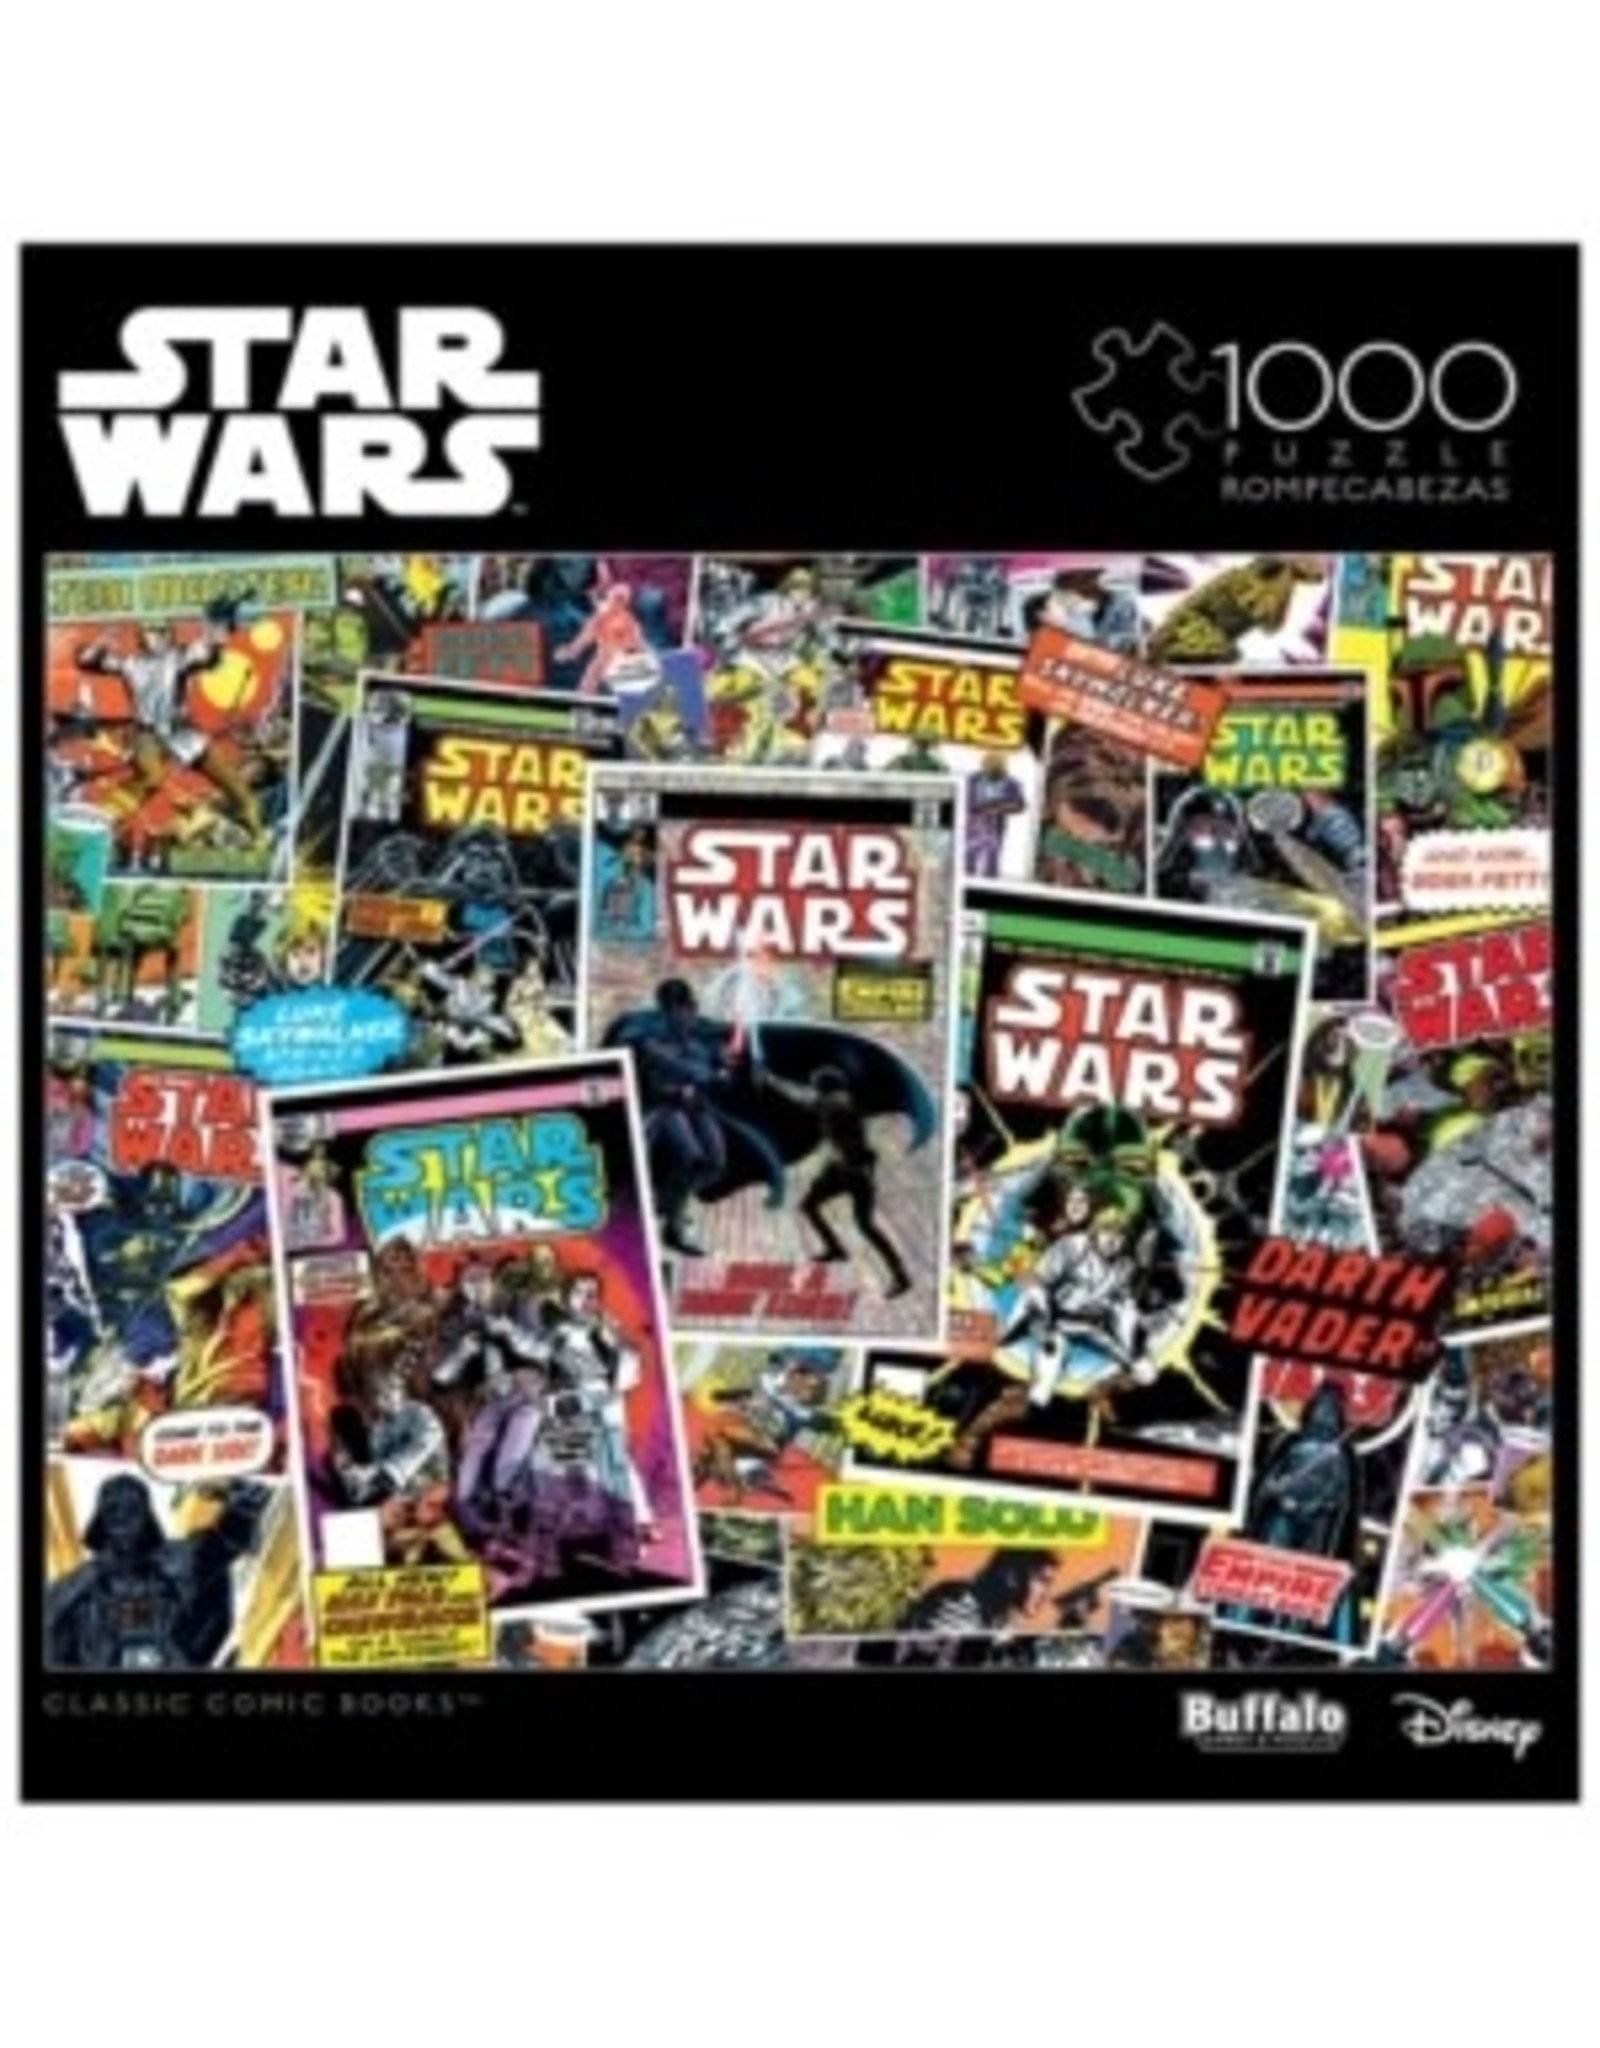 1000PC PUZZLE - STAR WARS CLASSIC COMIC BOOKS